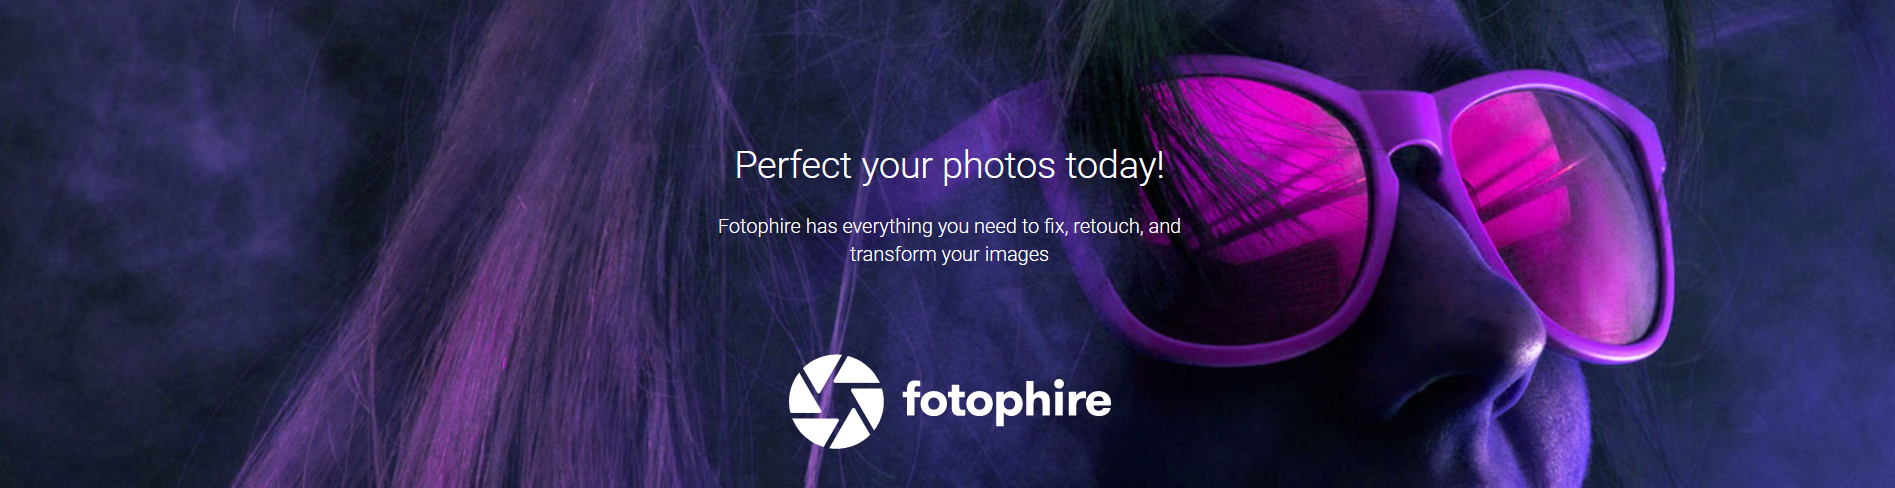 Wondershare Fotophire Review: Your Complete Photo Editing Toolkit